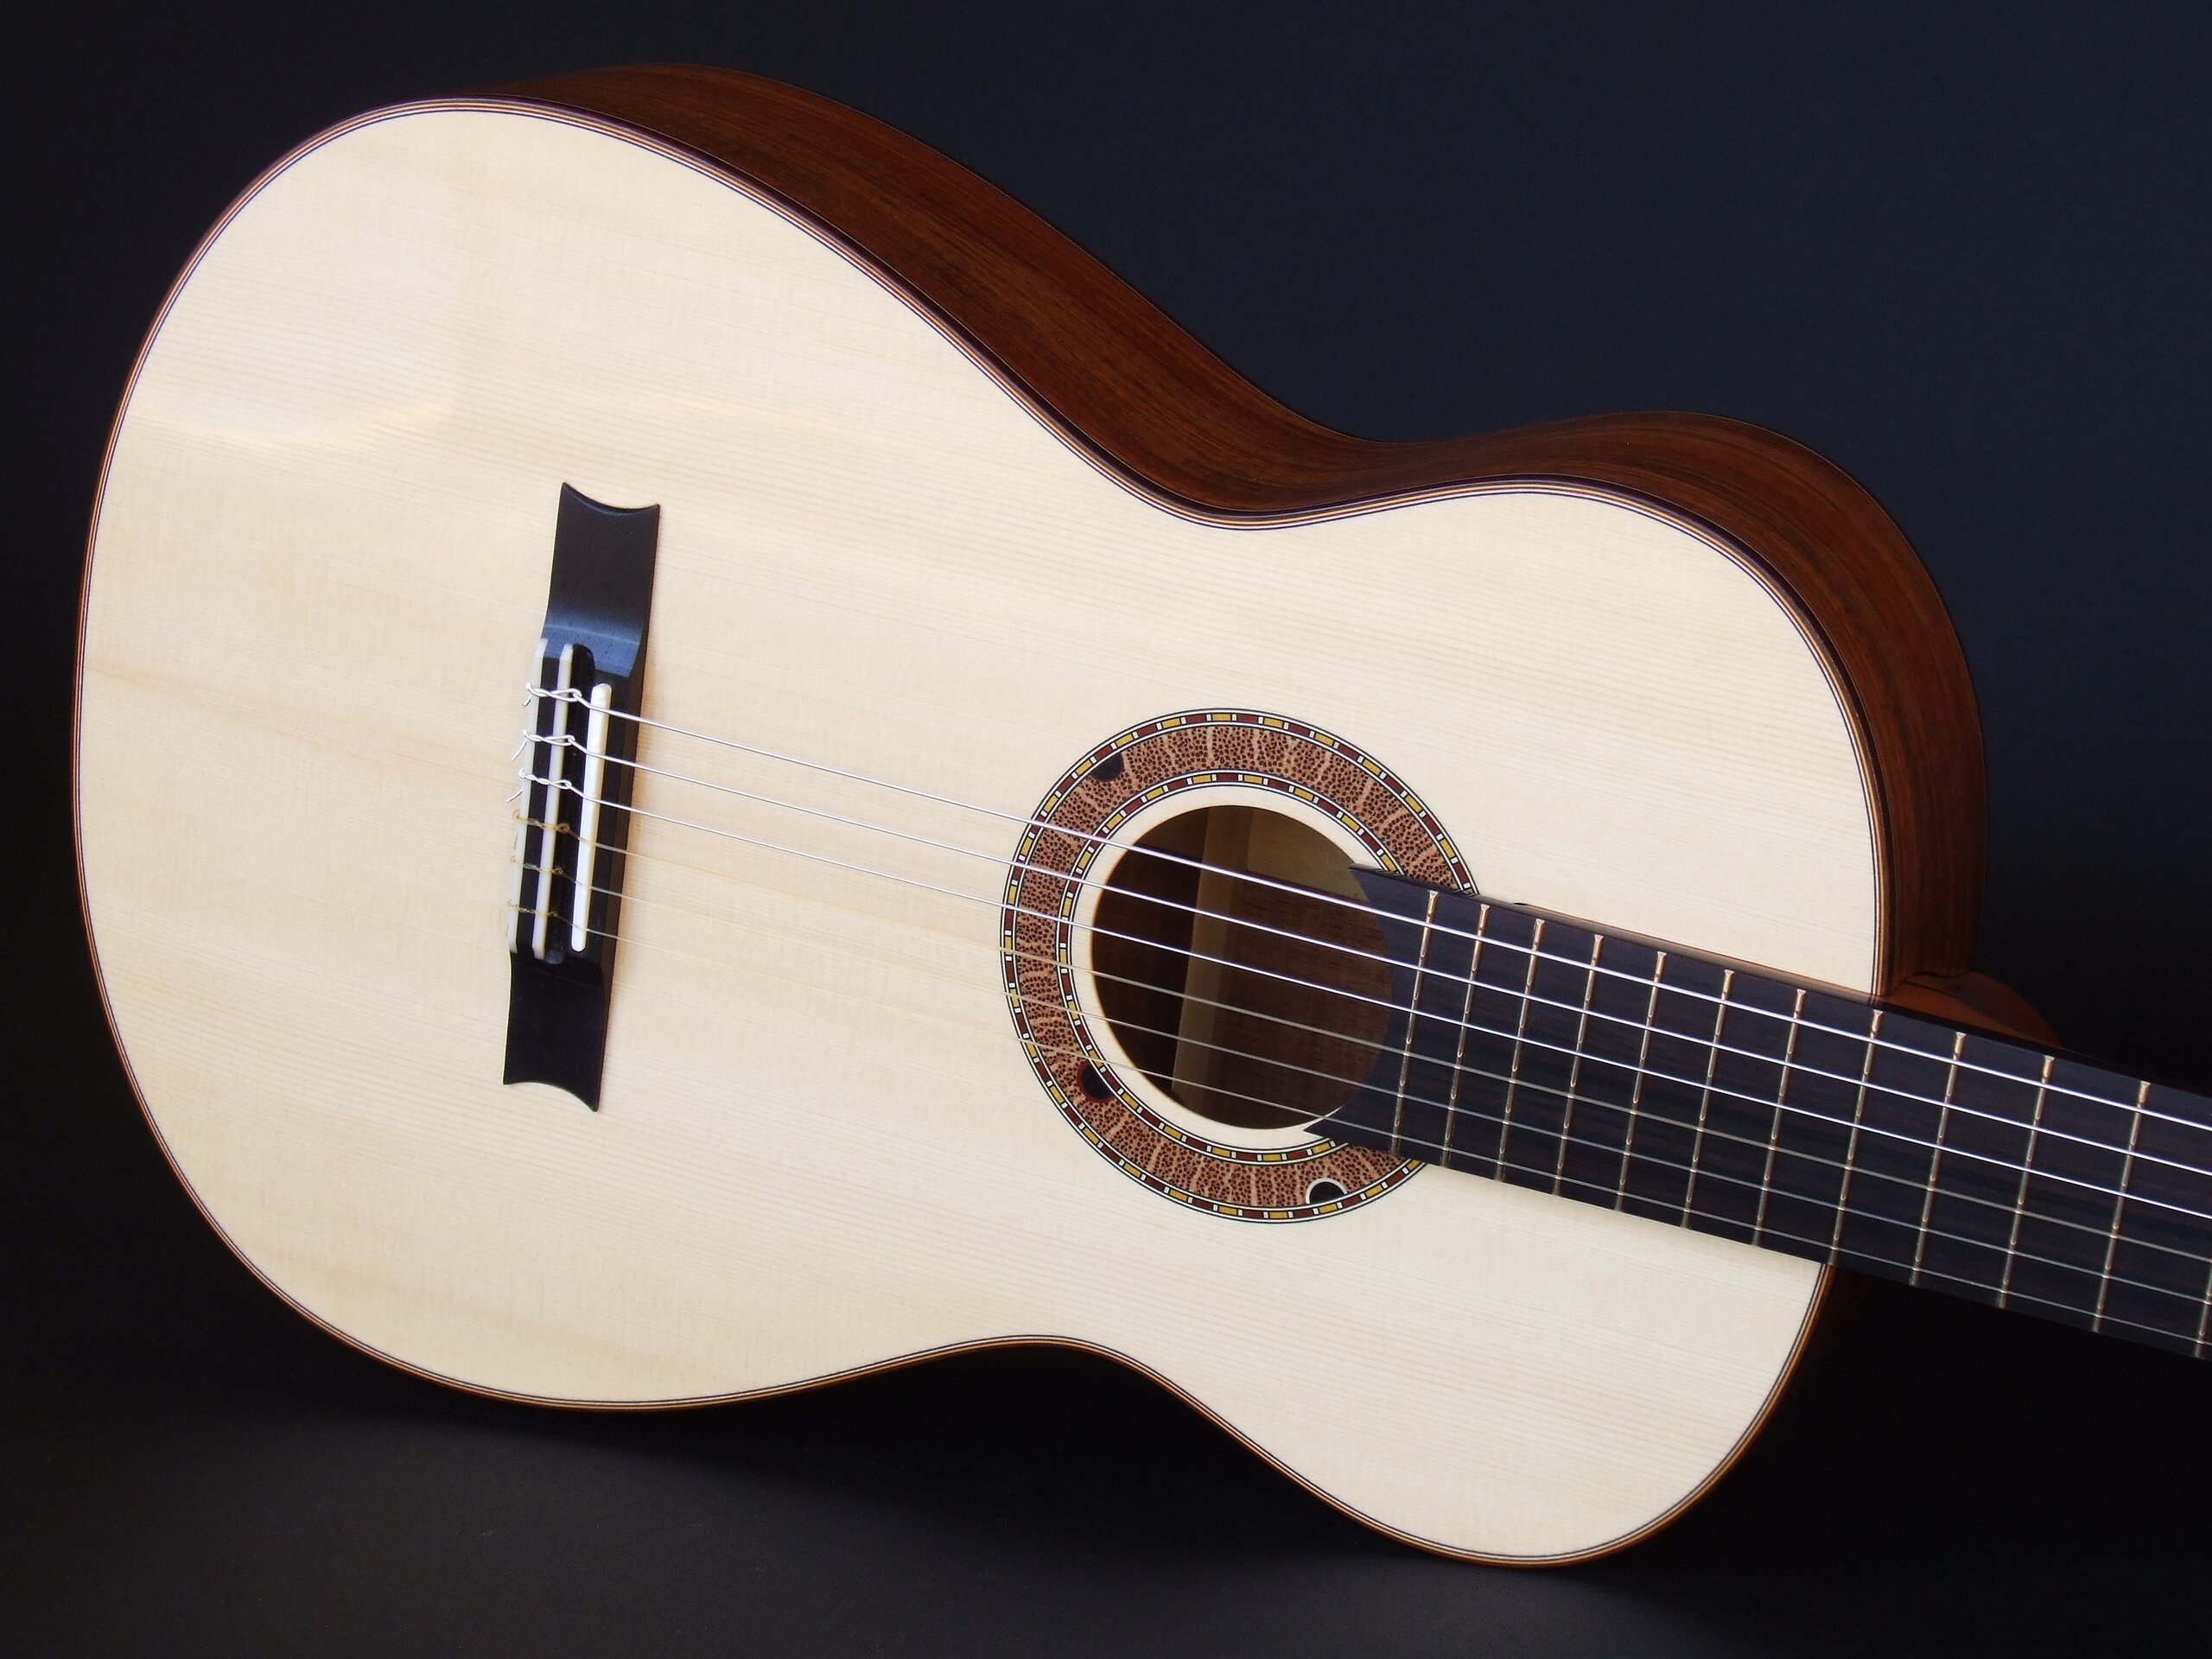 Gore small body spruce topped classical guitar with Australiana rosette